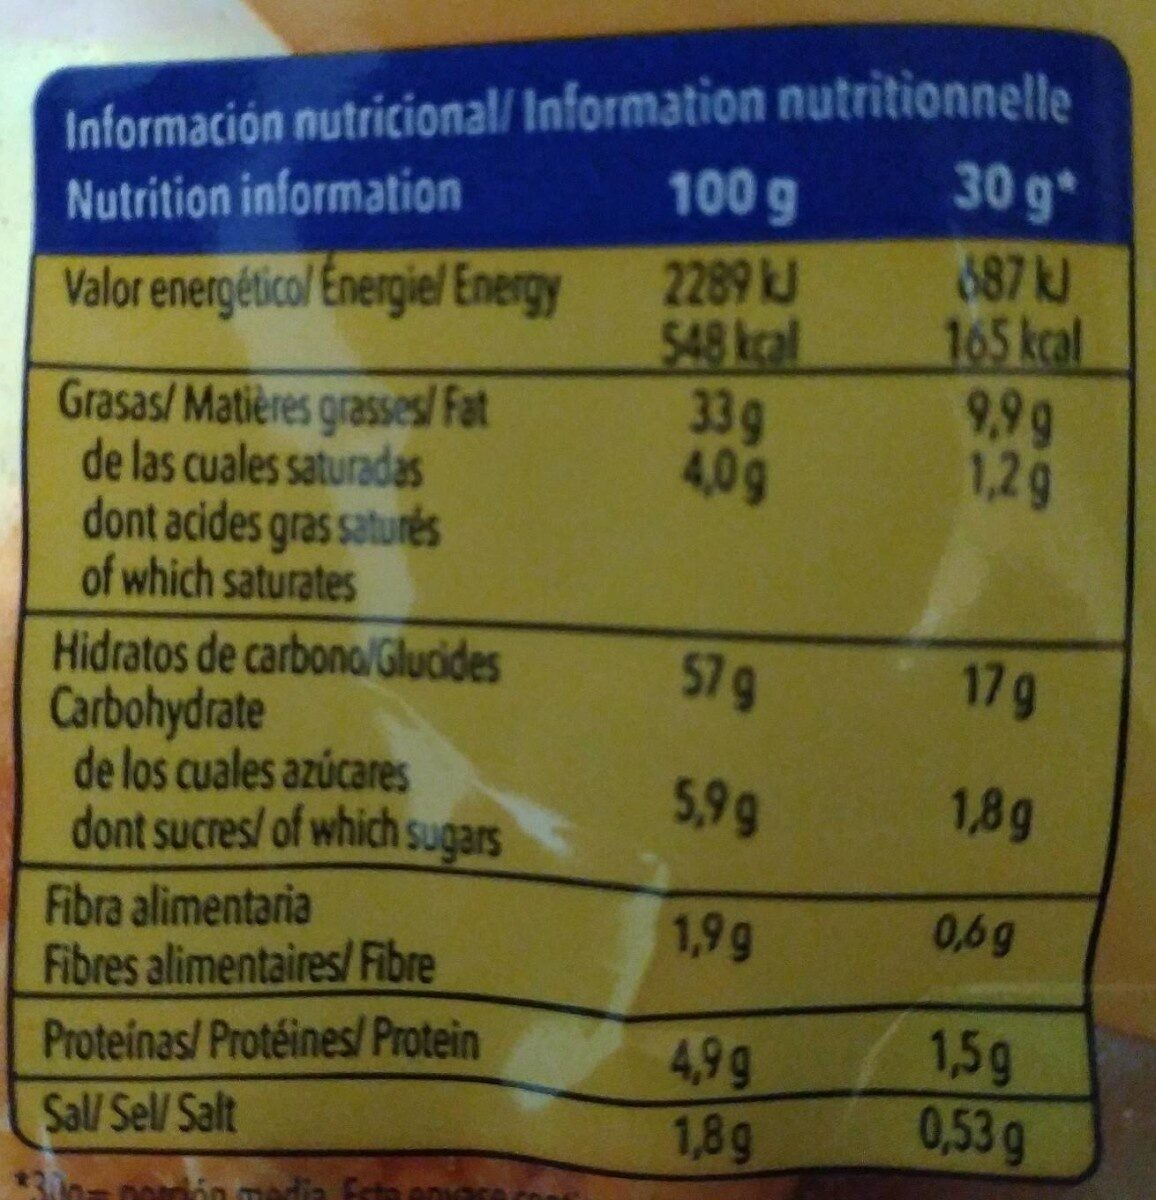 Cheese Tronkess - Informació nutricional